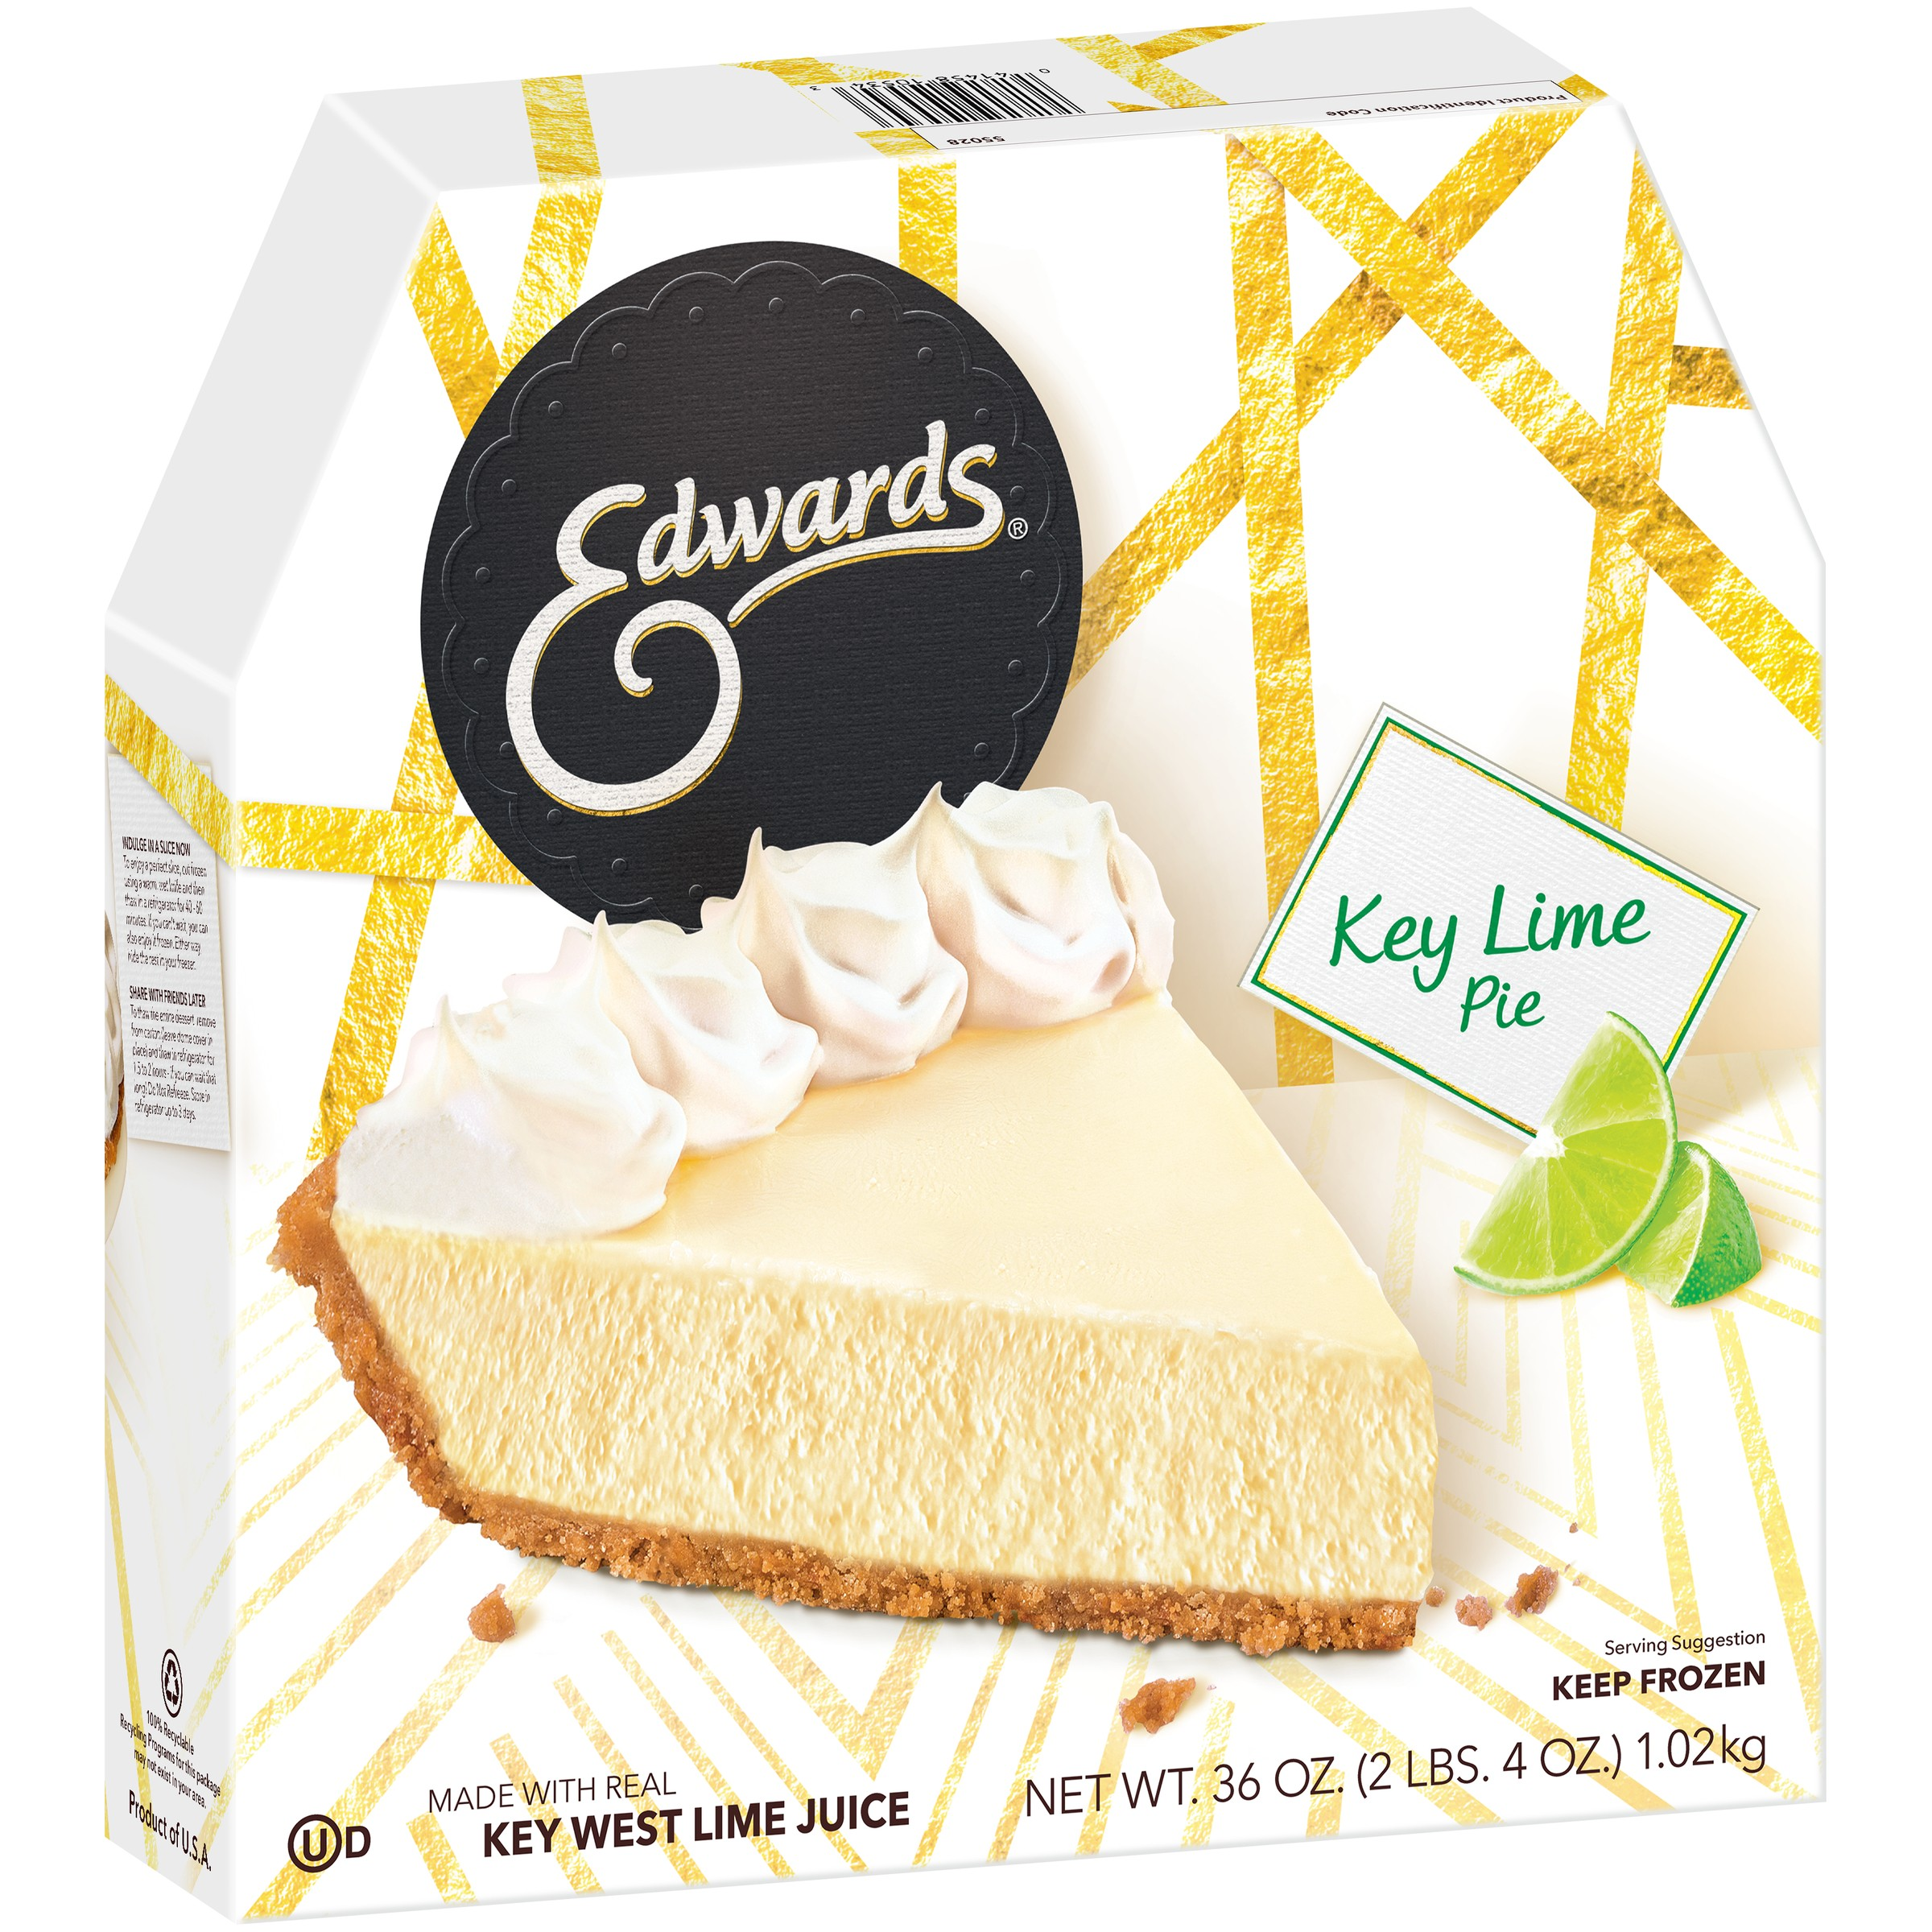 Edwards Key Lime Pie in a Cookie Crust 36 oz. Box - Walmart.com